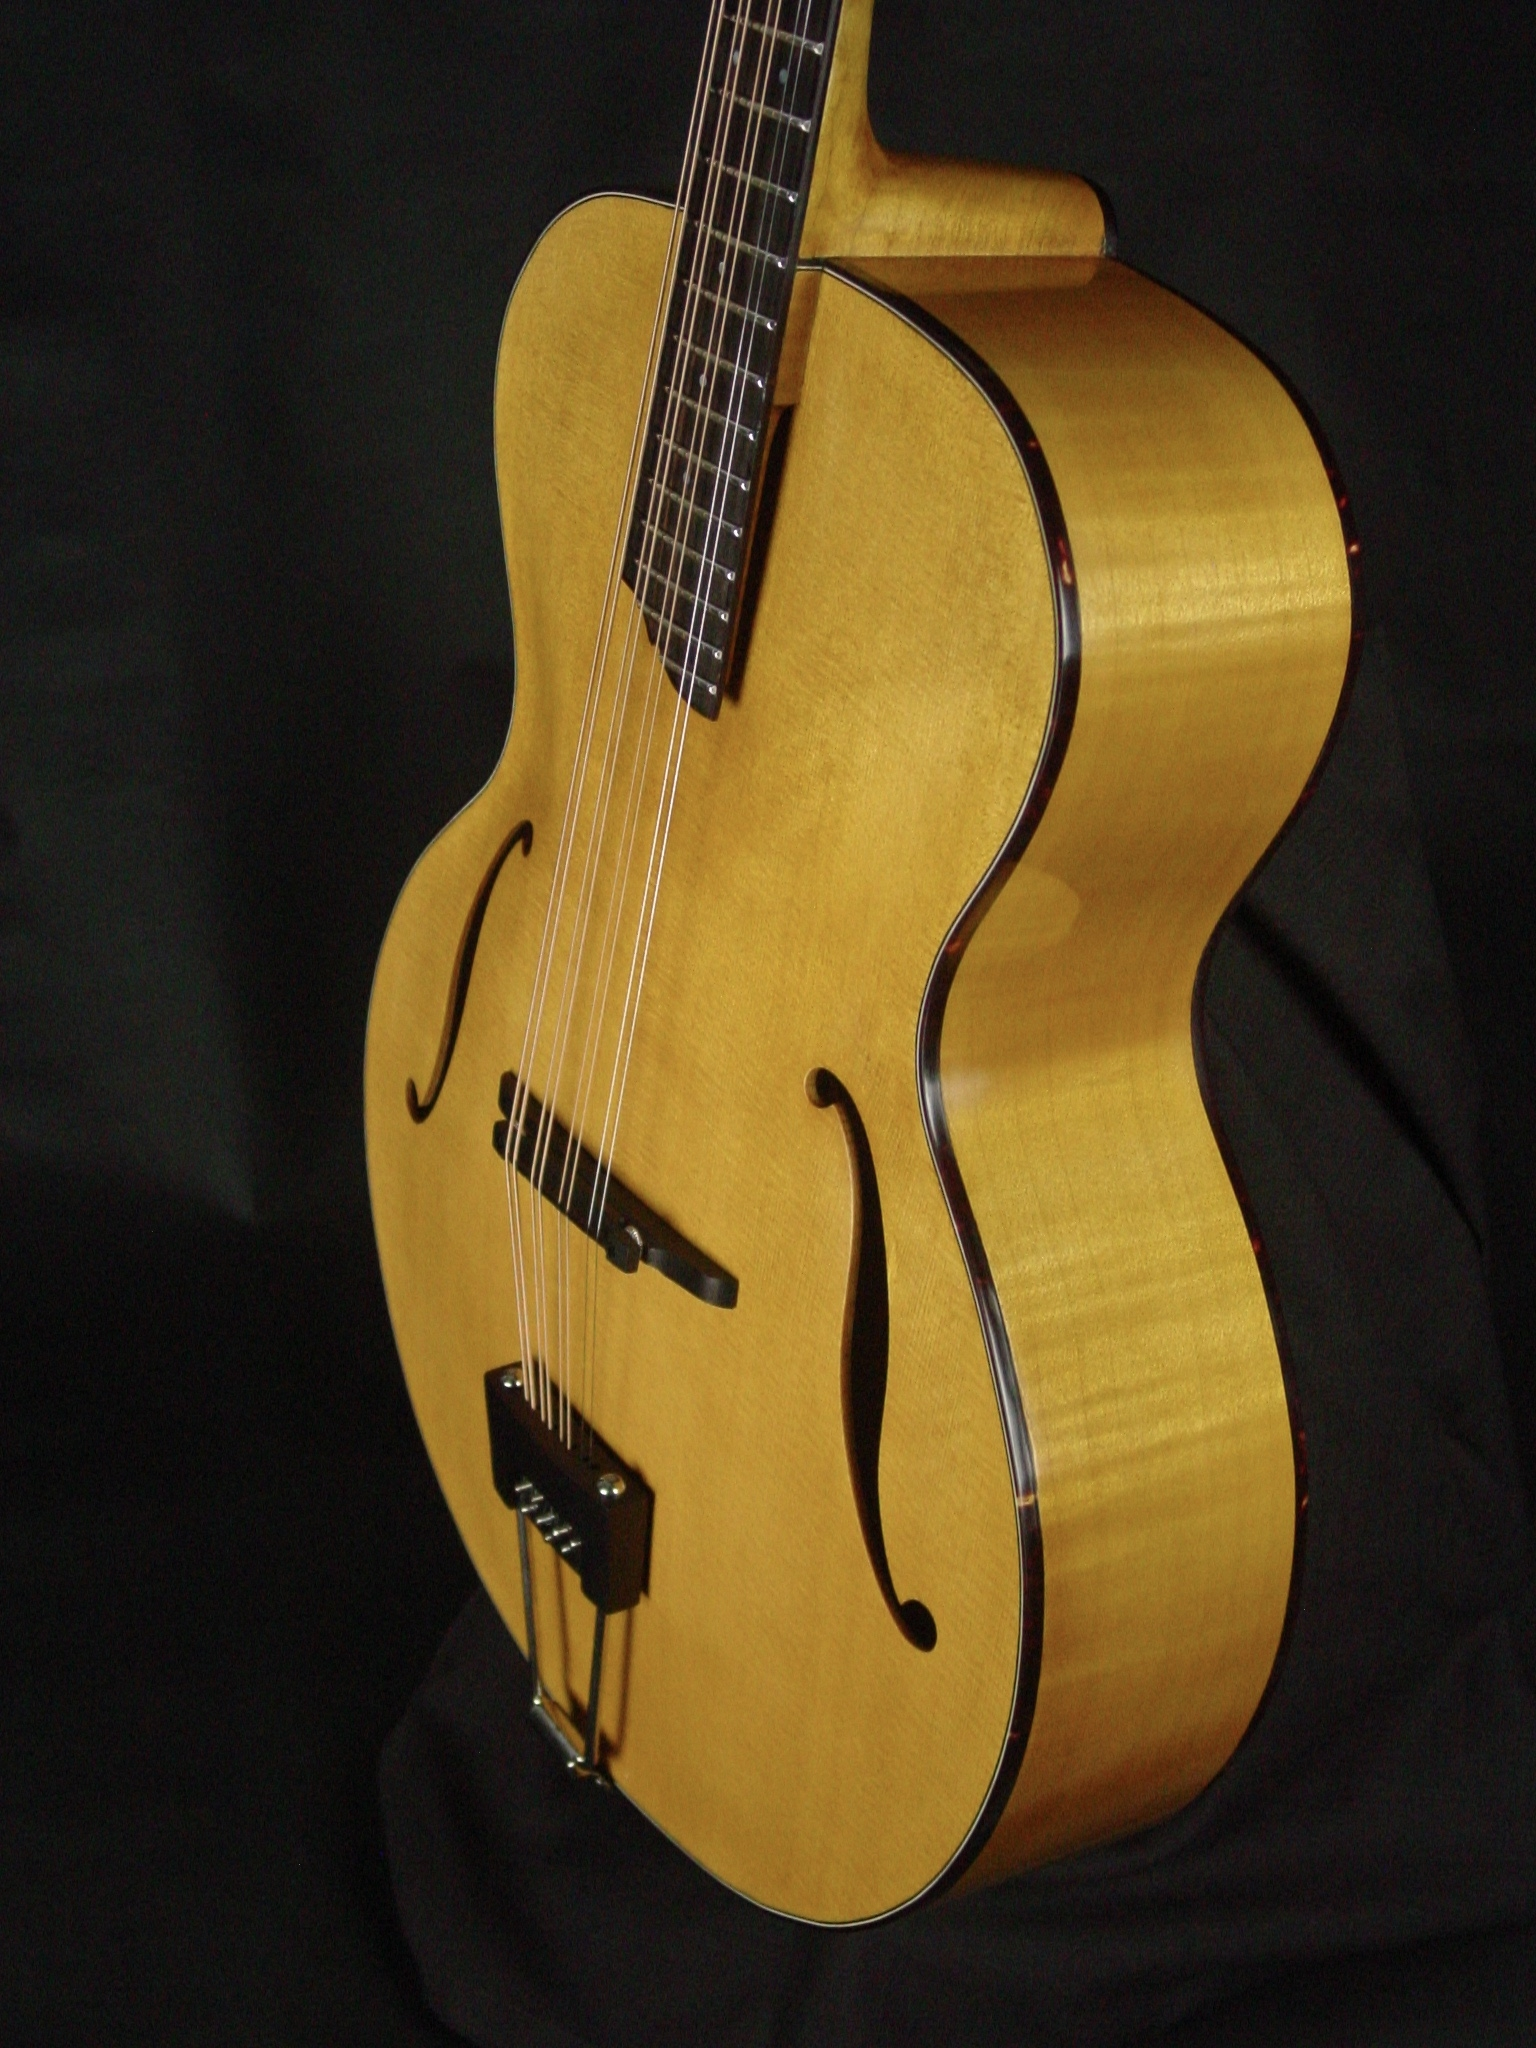 Canyon Octave Instrument by Cedar Mountain Mandolin octave OCTAVE-MANIA octave mania